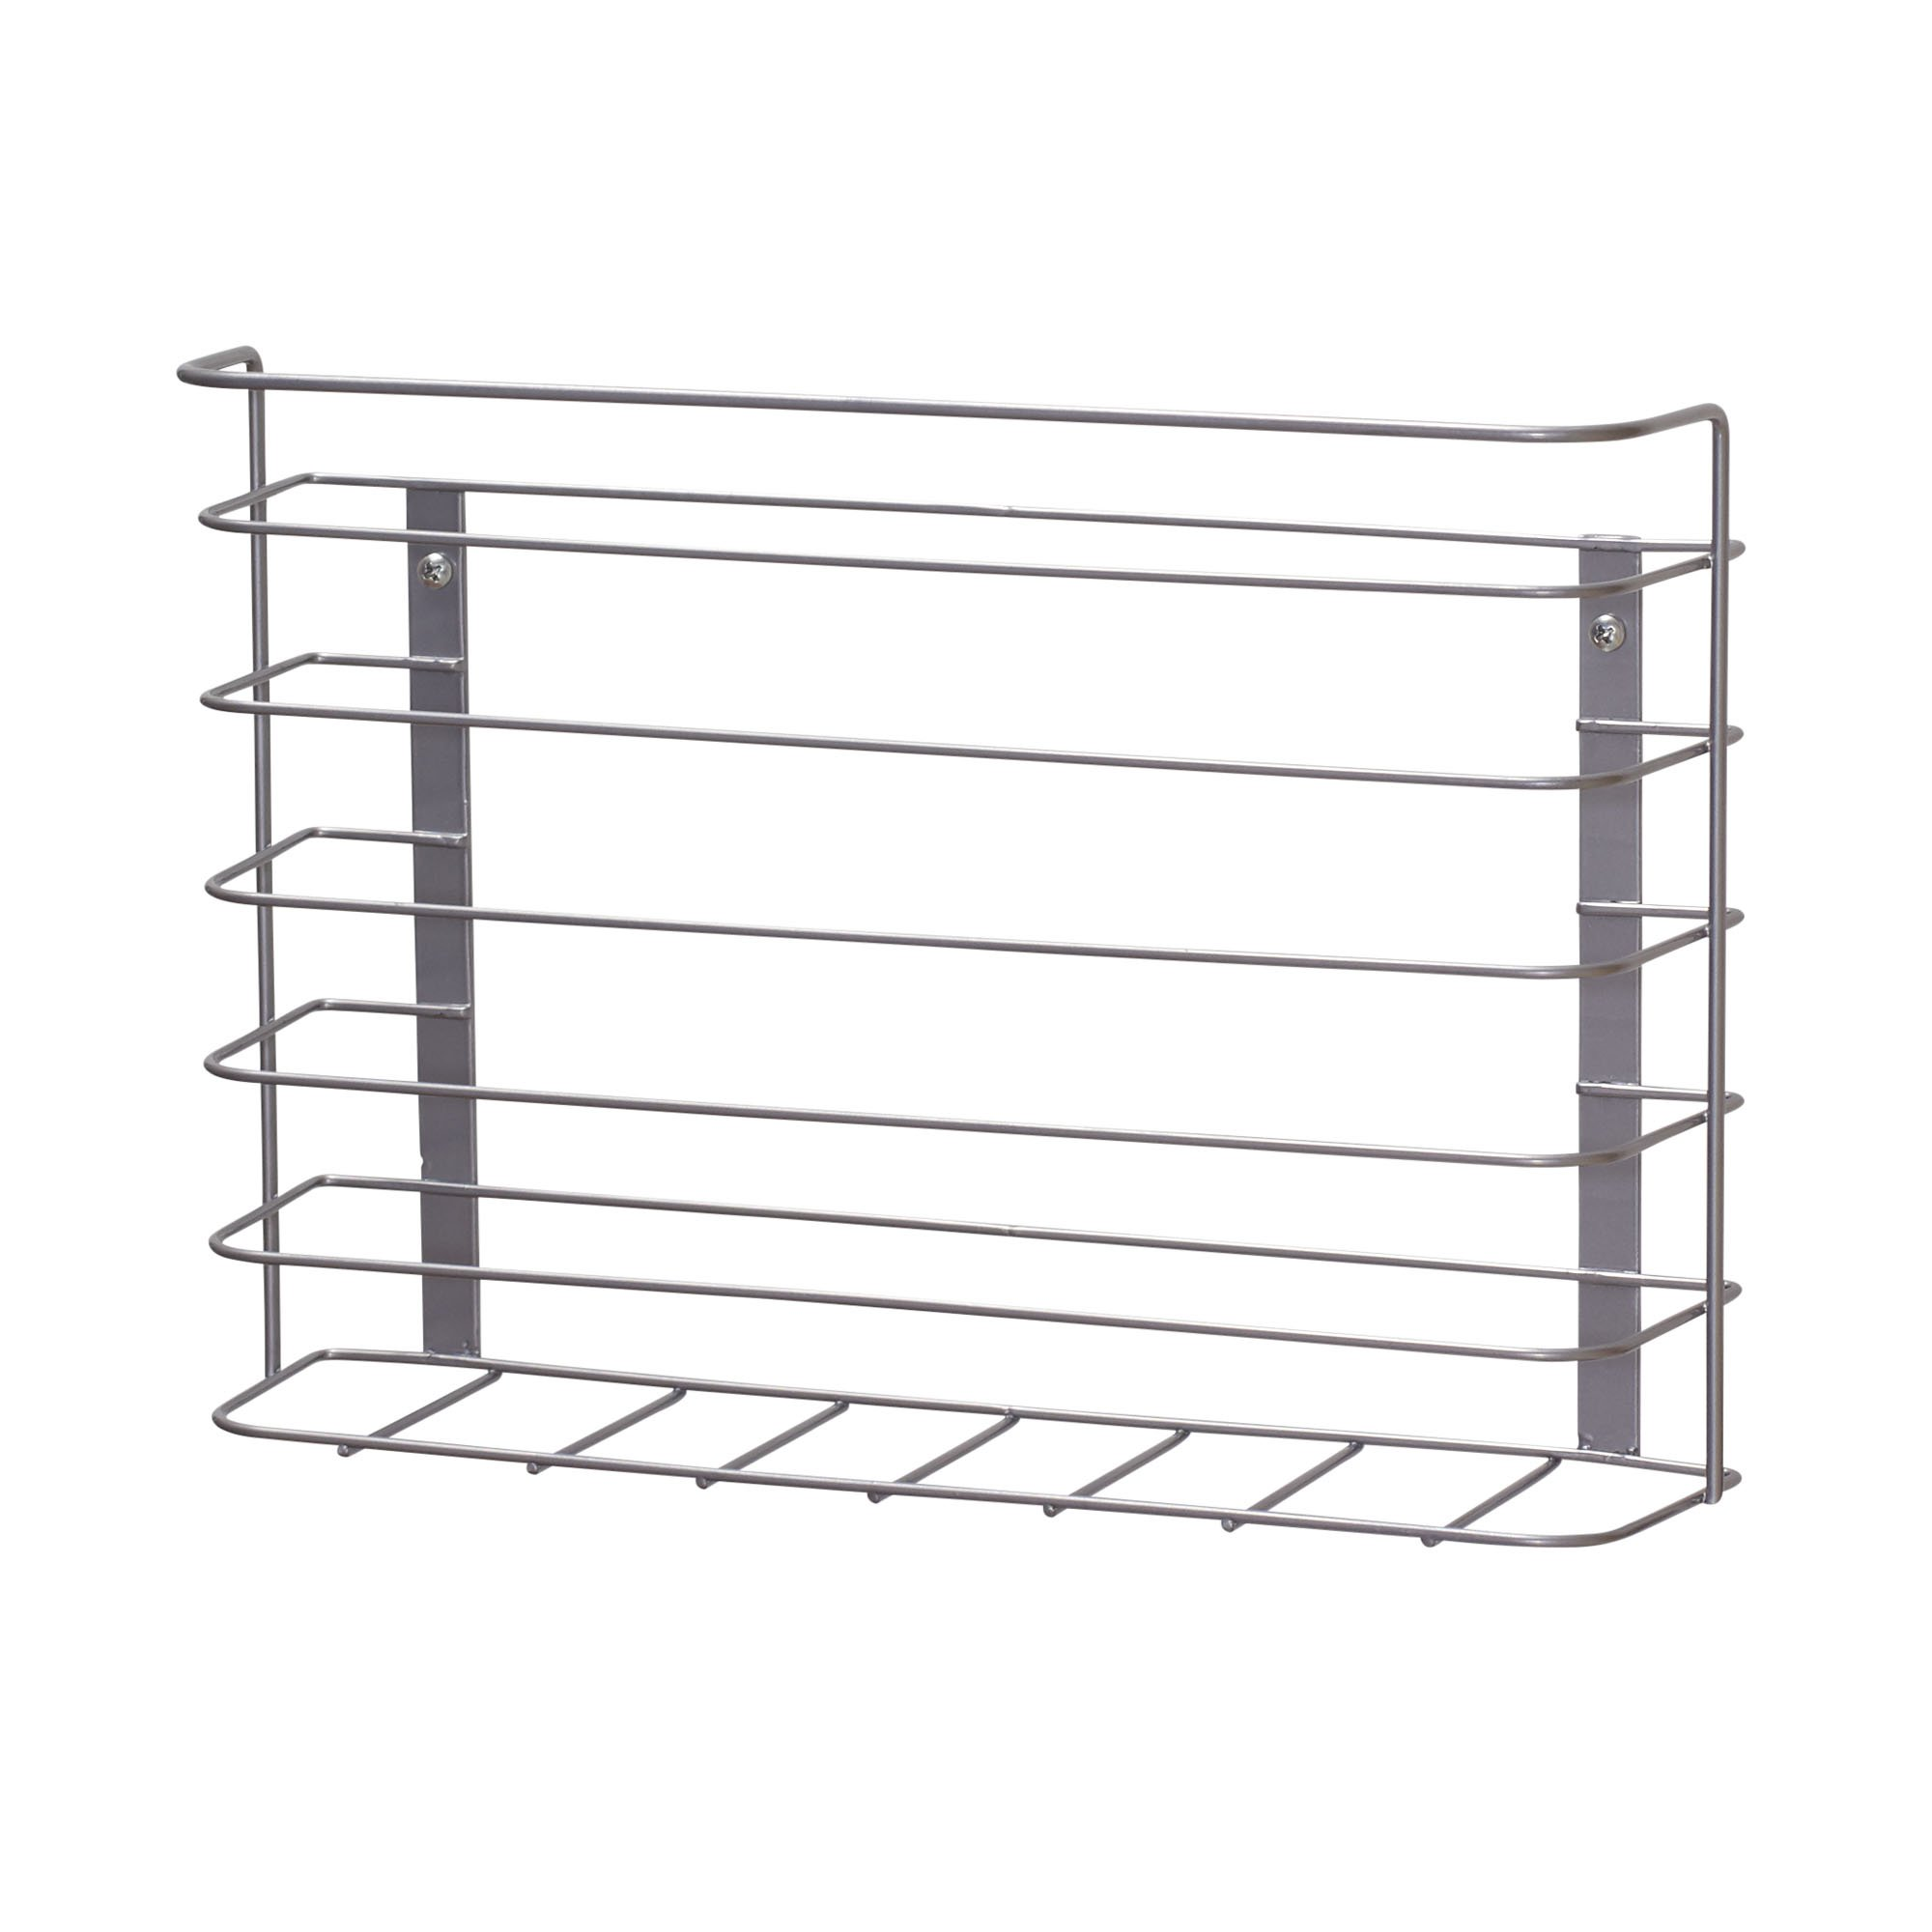 Household Essentials 1229-1 Tall Basket Door Mount Cabinet Organizer | Mounts to Solid Cabinet Doors or Walls by Household Essentials